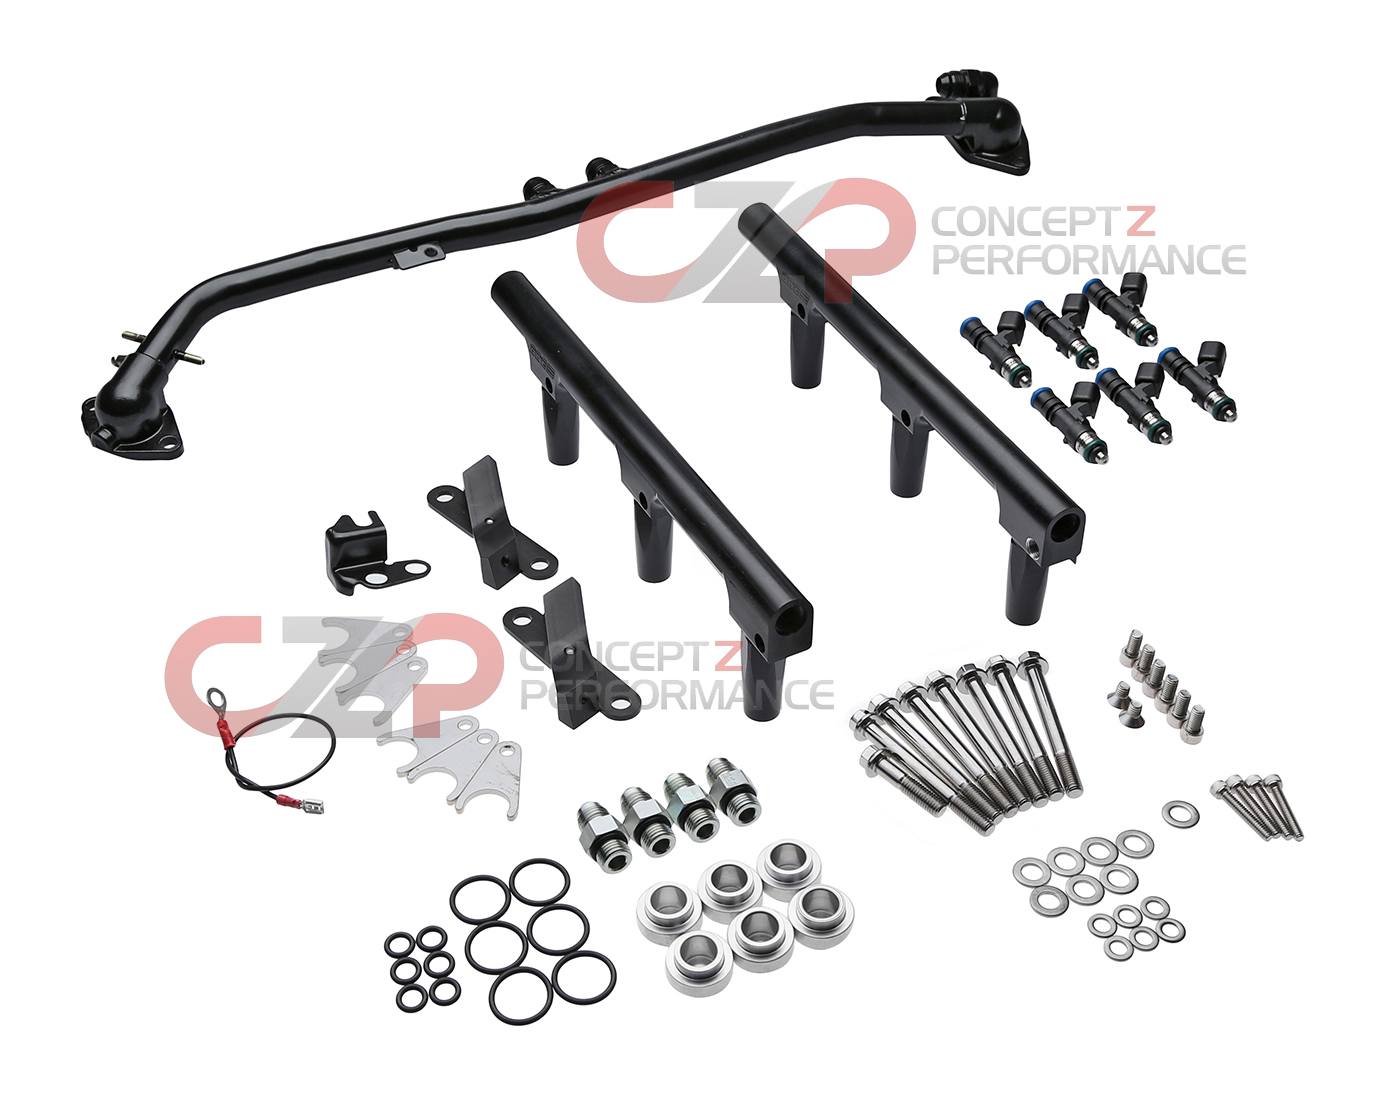 Bde Top Feed Fuel Rail Kit W Optional Injectors